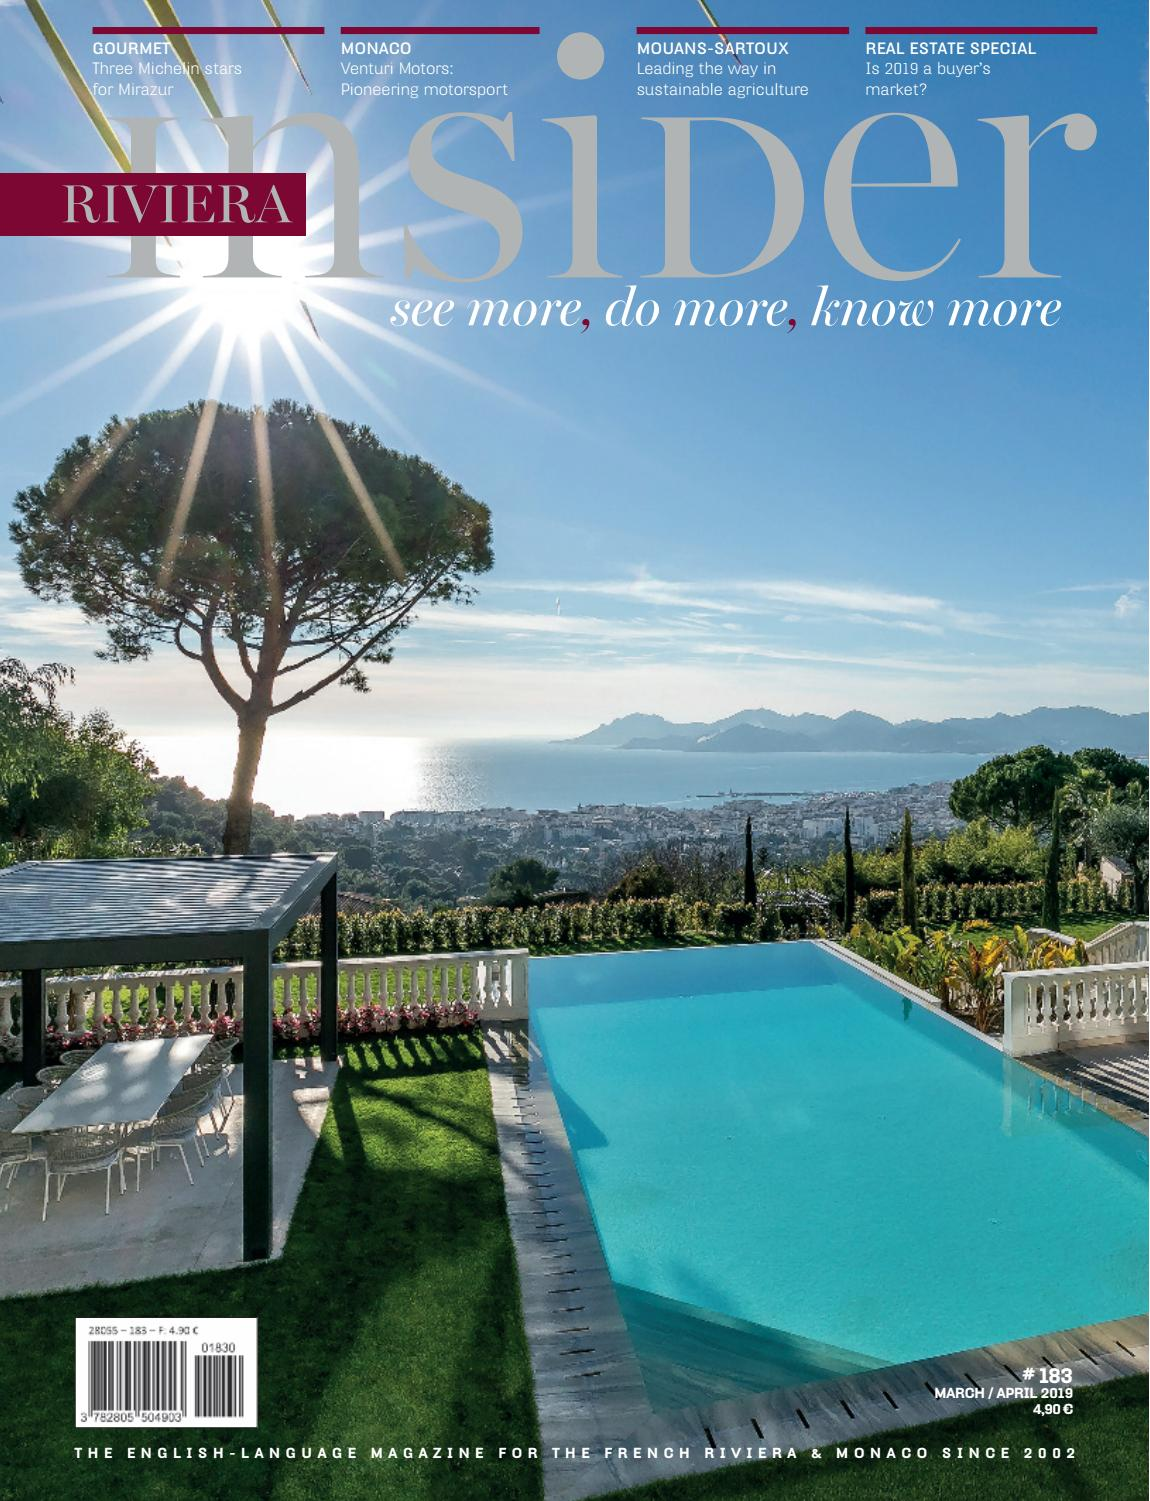 Ikea Nantes Cuisine Rendez Vous riviera insider - march/april 2019riviera press - issuu